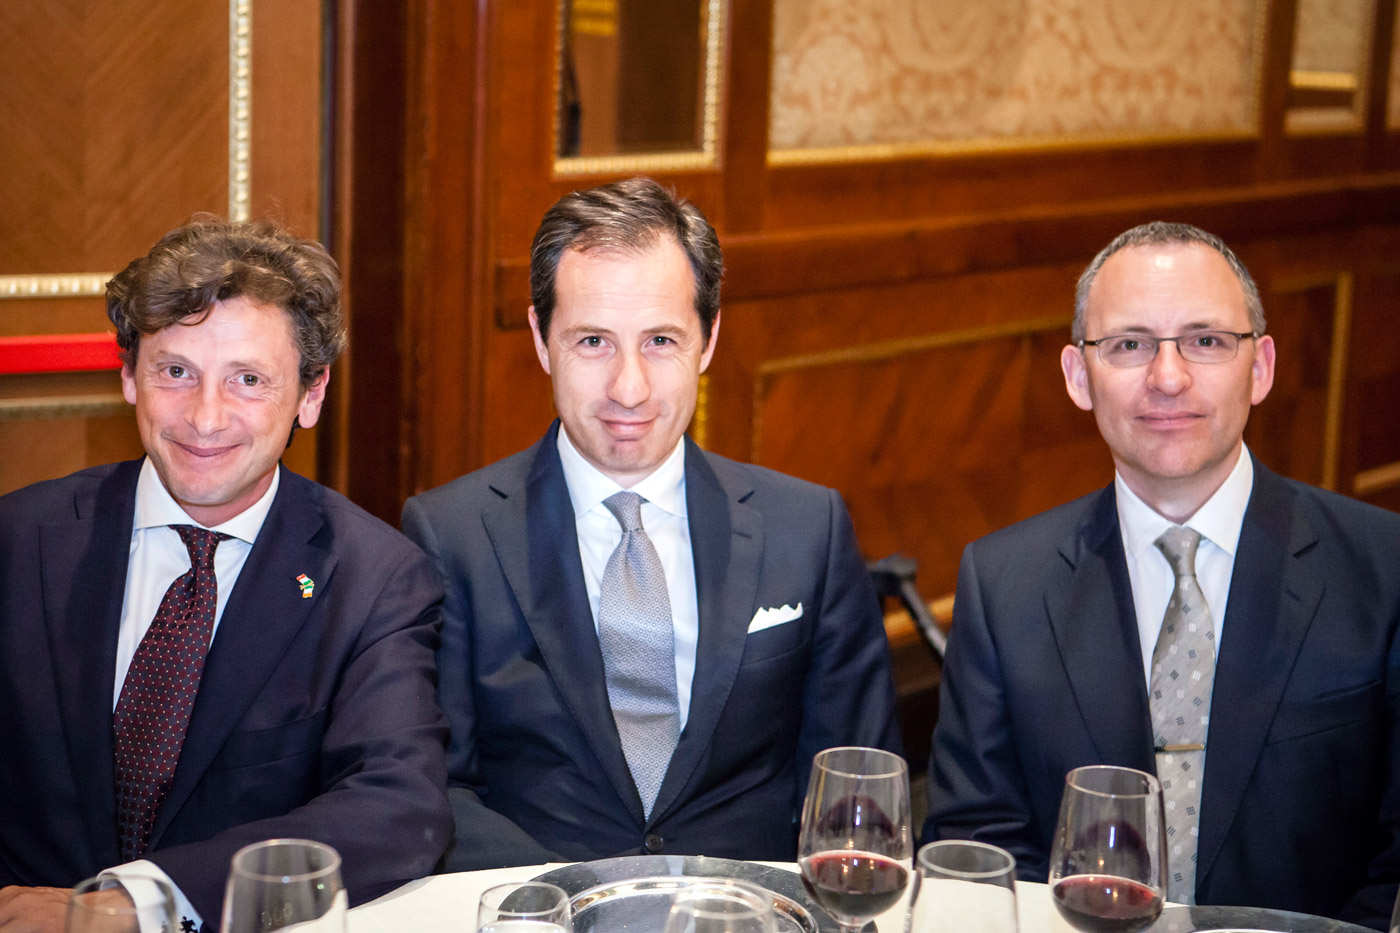 Alberto Recanatesi (Operations Manager for Bookassist Italia), Atonelli Buono (General Manager Monrif Hotels), Des O'Mahony (CEO Bookassist) at the Presidential Dinner in Milan, June 15th